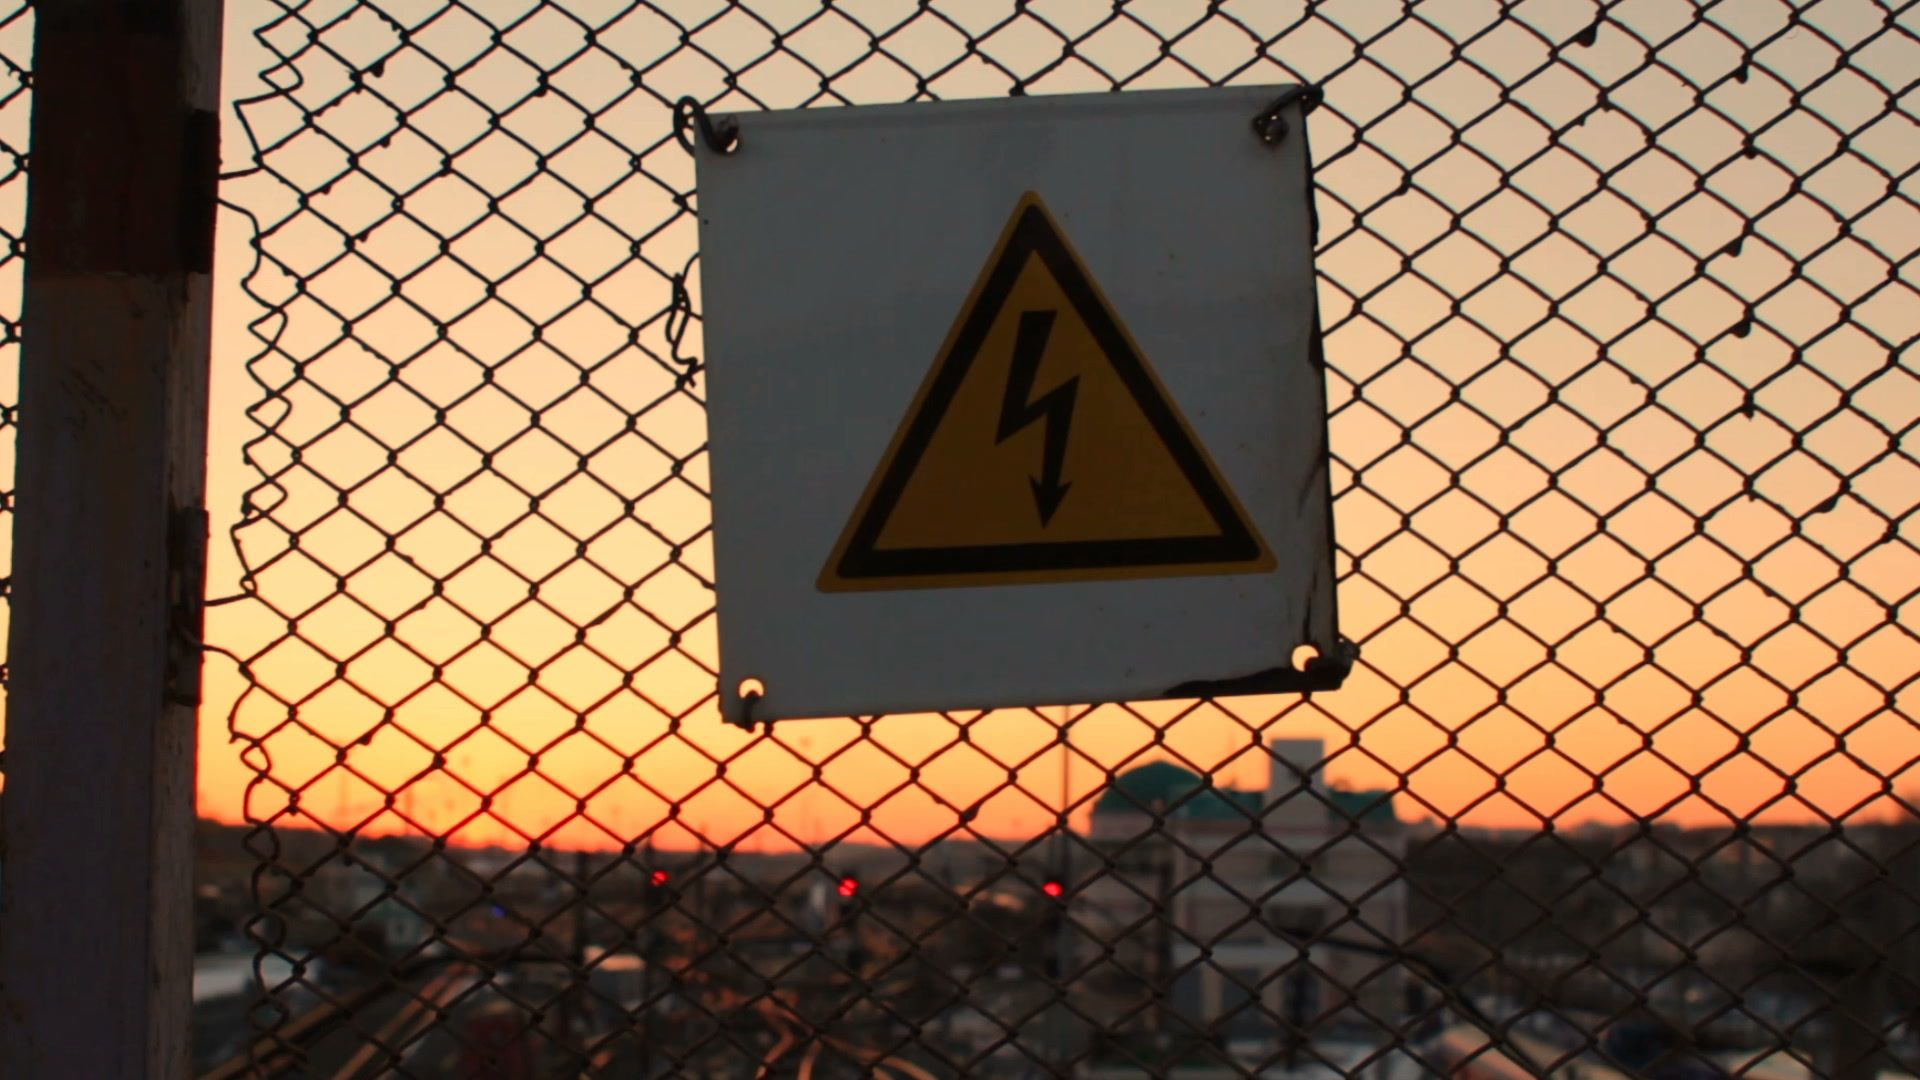 High Voltage Danger Sign On A Lattice Over Railway Yard Station Warning Stock Footage Sign Lattice Danger High High Voltage Lattice Danger Sign